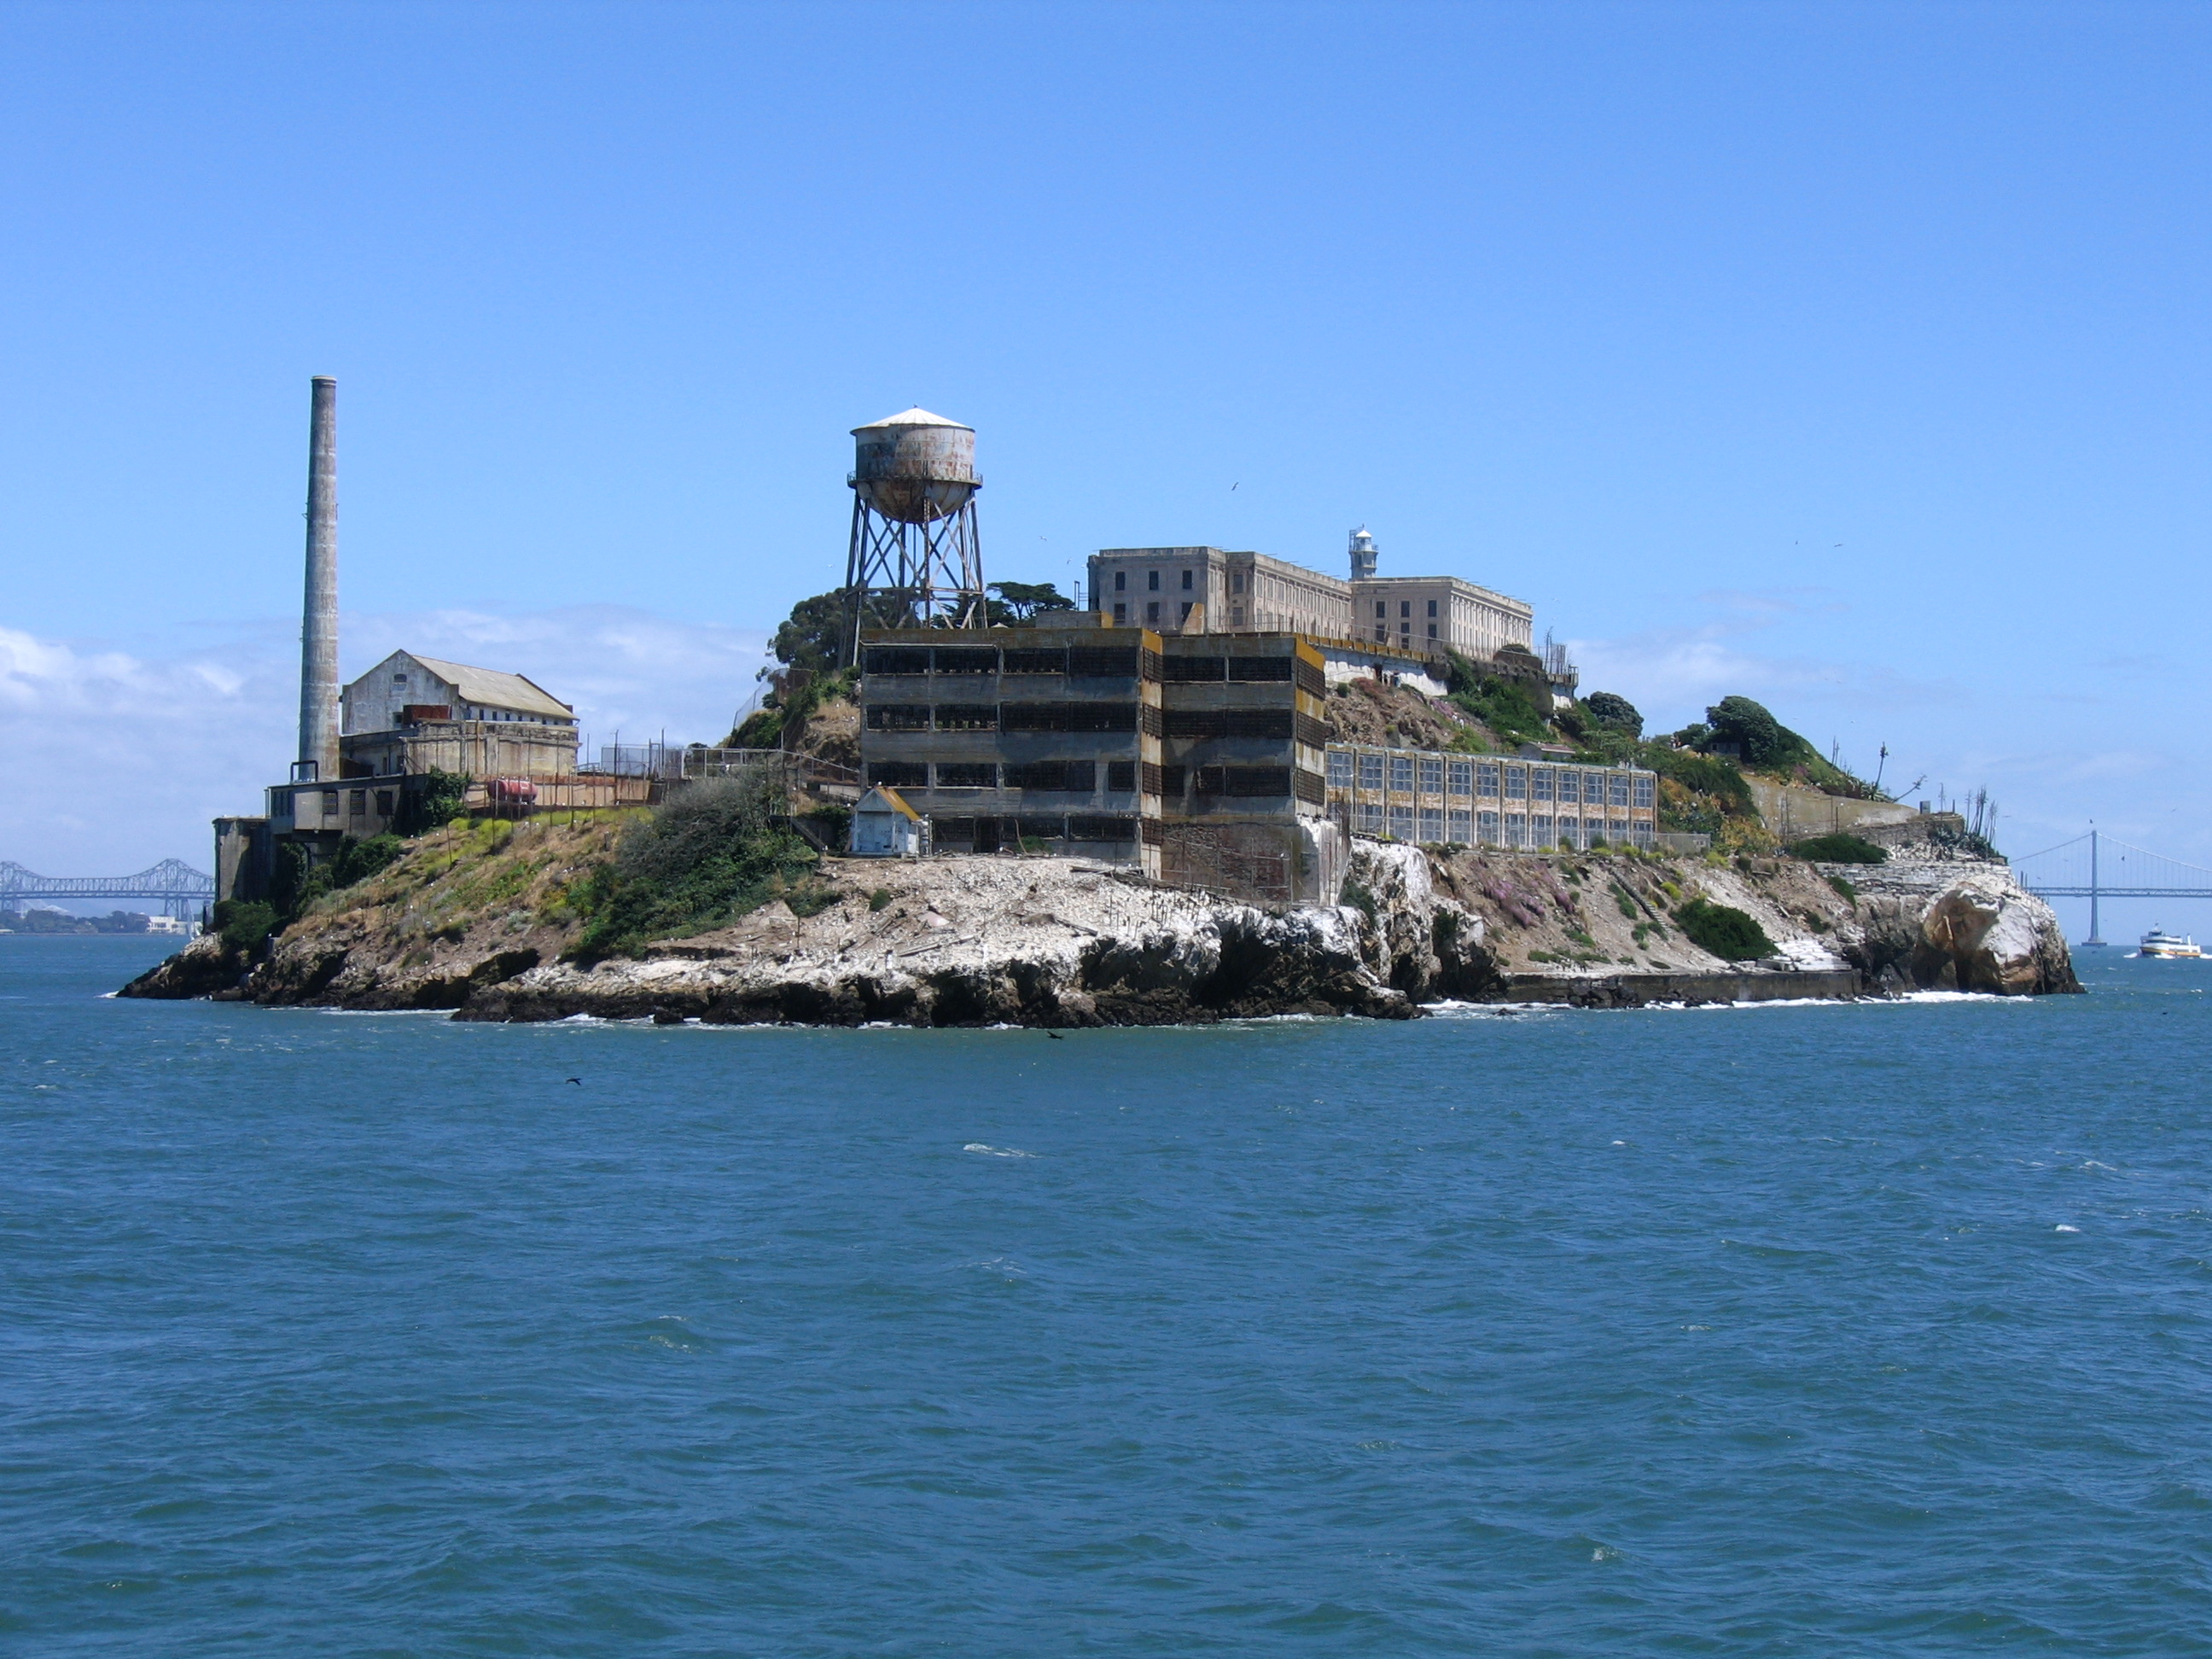 filealcatraz islandjpg